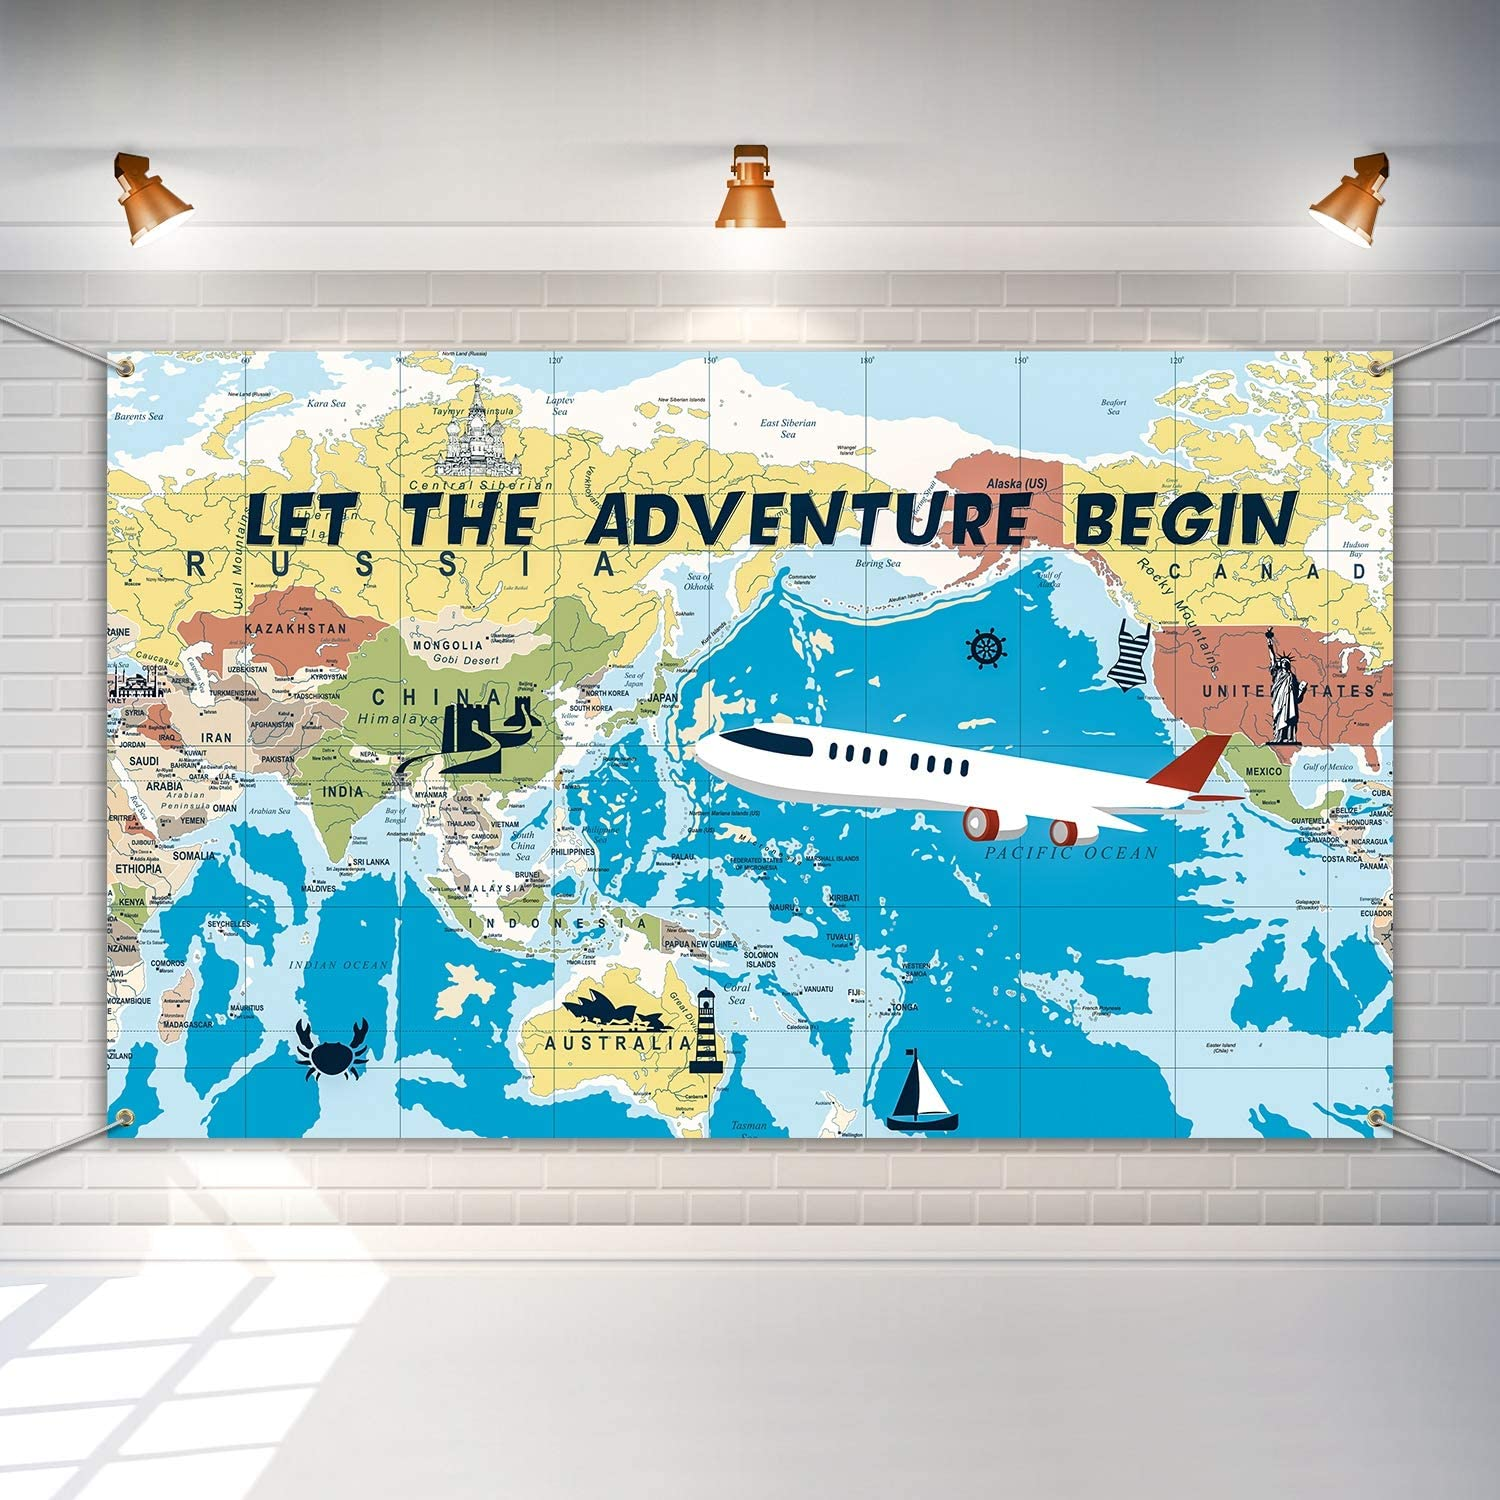 Adventure Awaits Backdrop Large Travel Theme Banner Decoration Let The Adventure Begin World Map Dessert Table Background Photobooth Prop 6 x 3.6 Feet